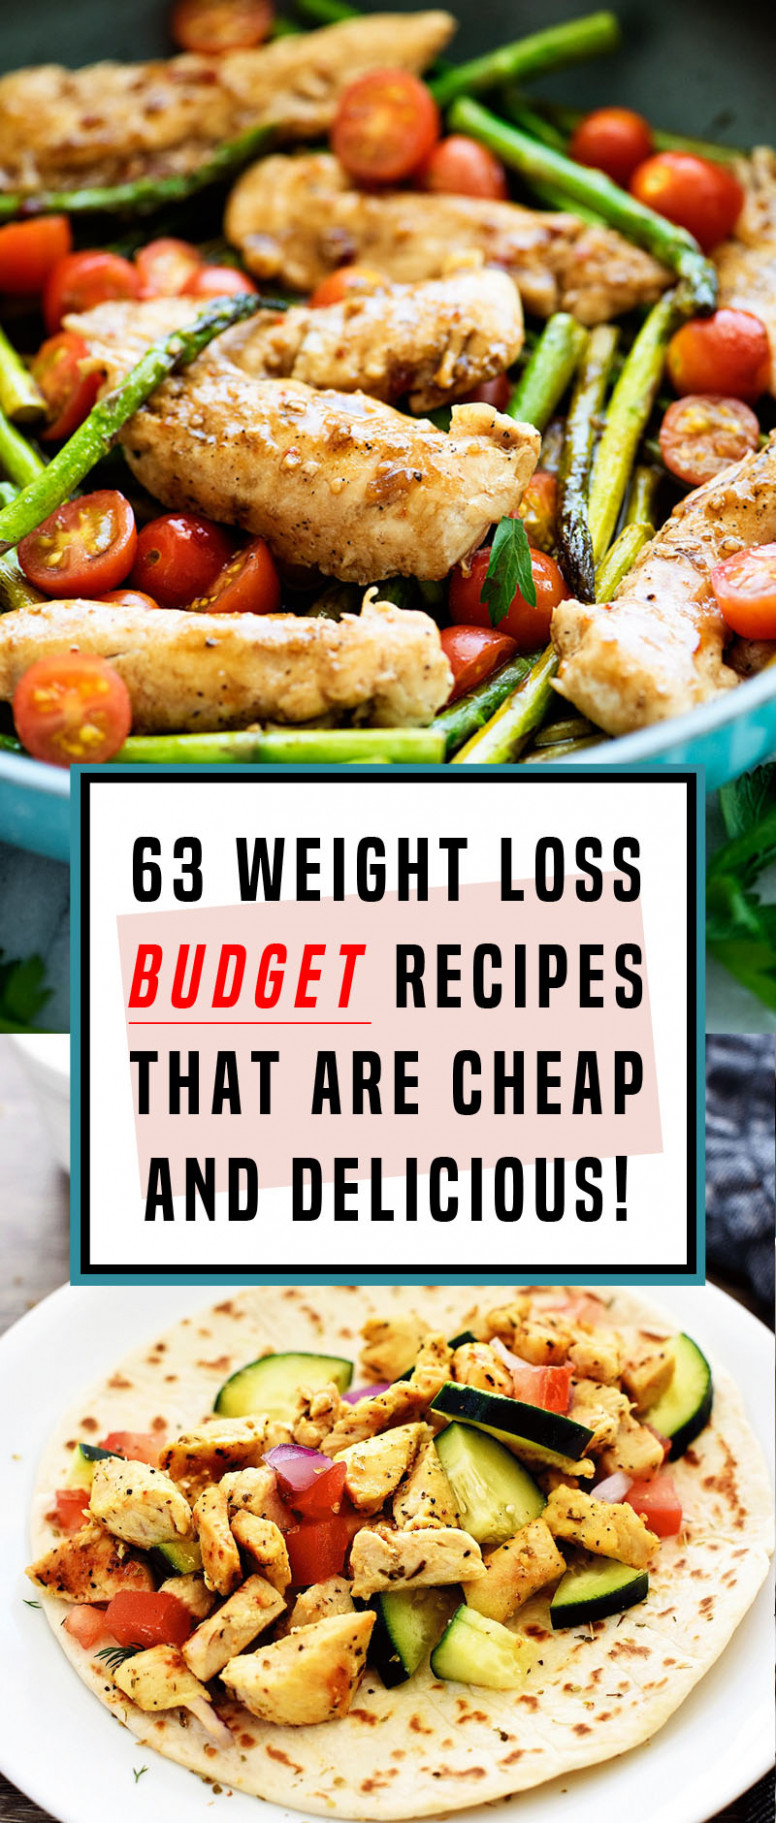 11 Budget Weight Loss Recipes That Will Help You Lose Fat ..